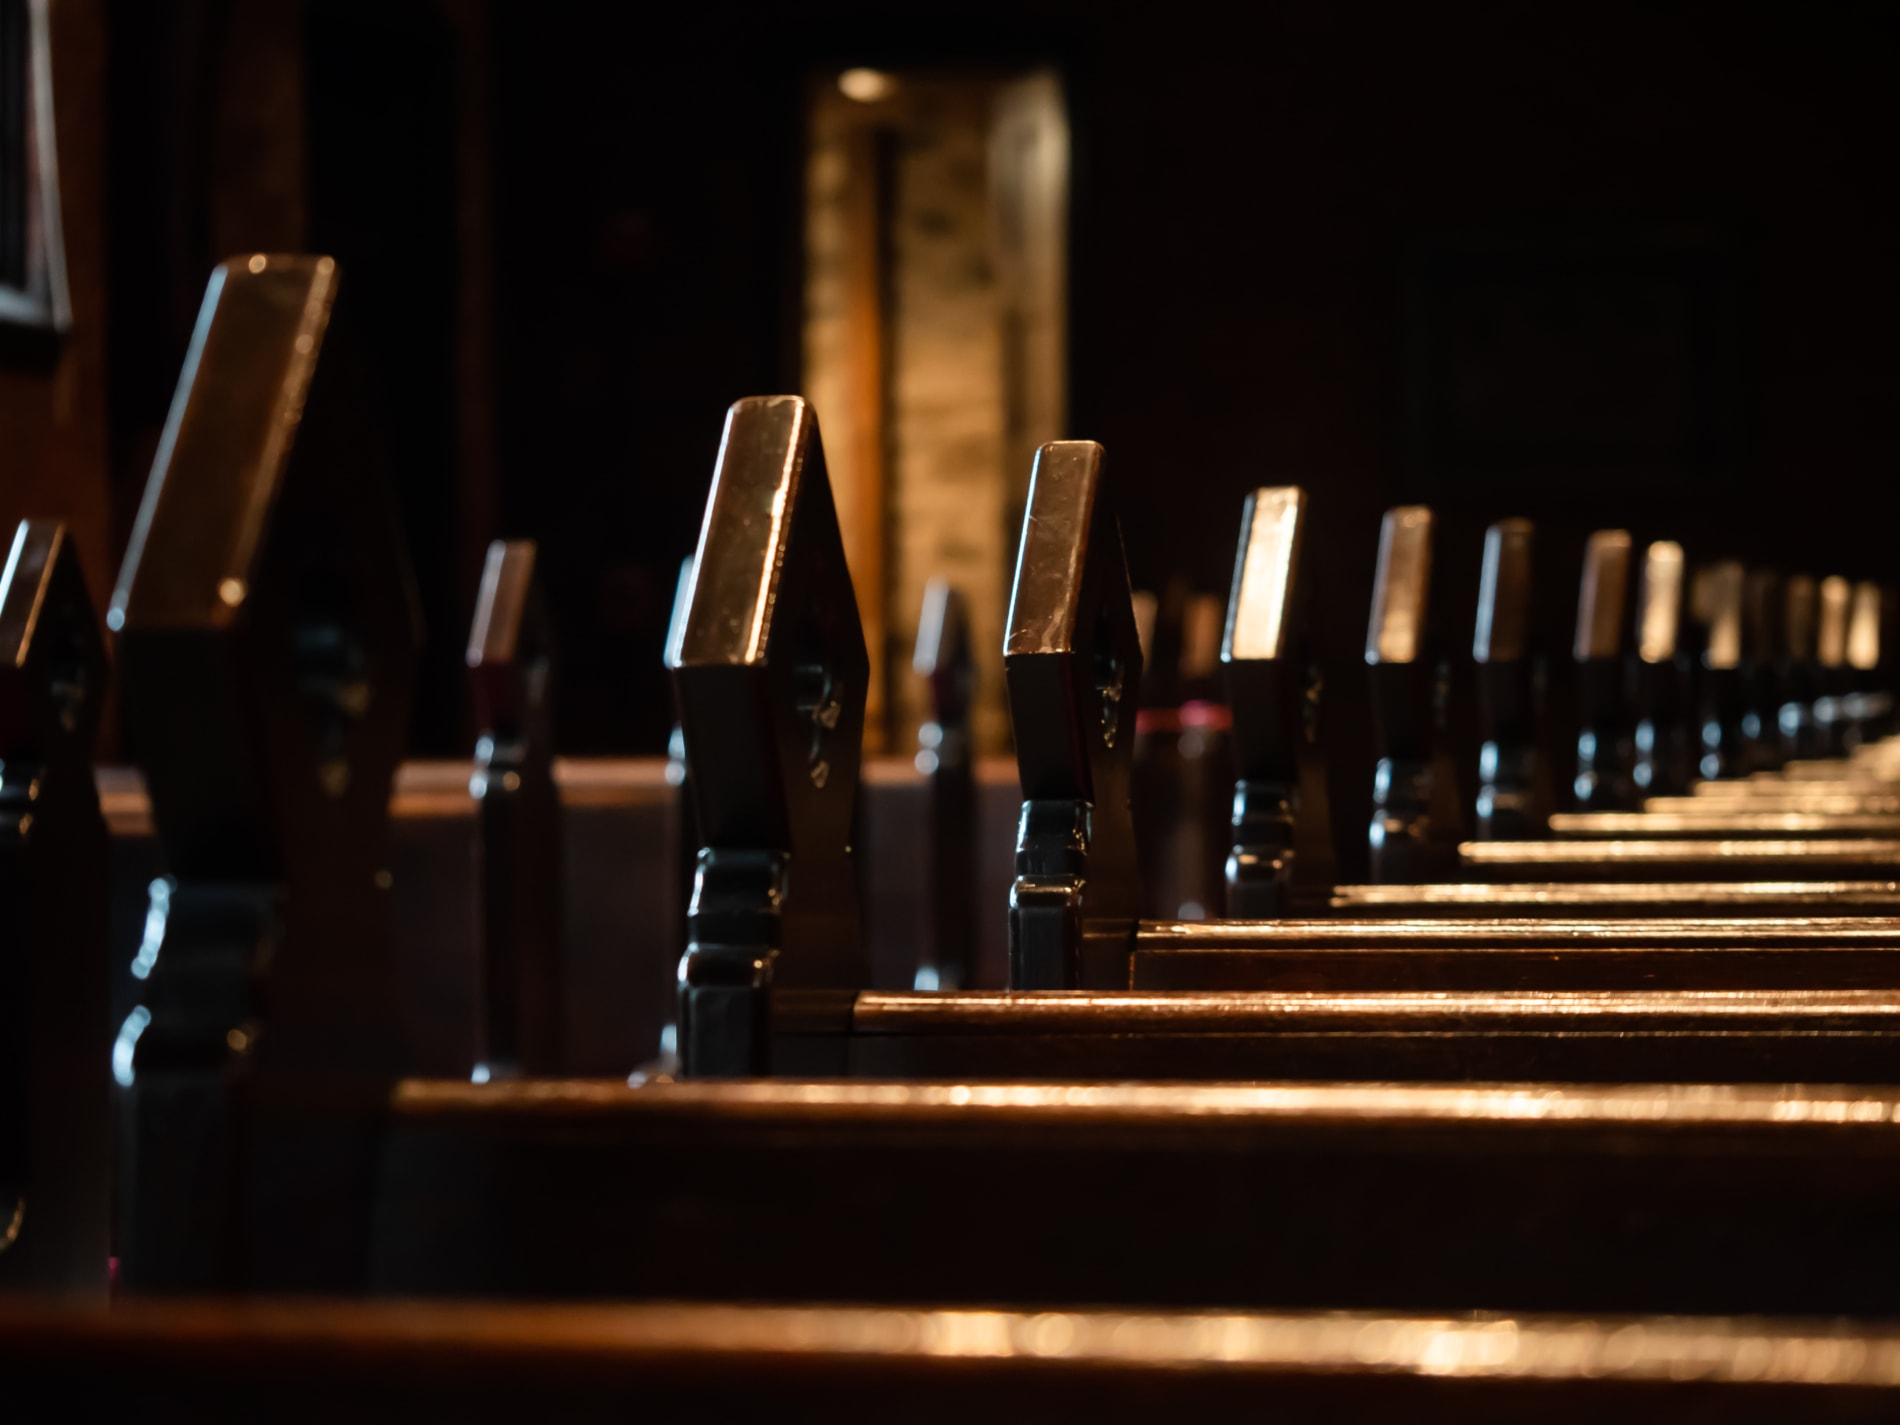 Wooden carved finials on church pews